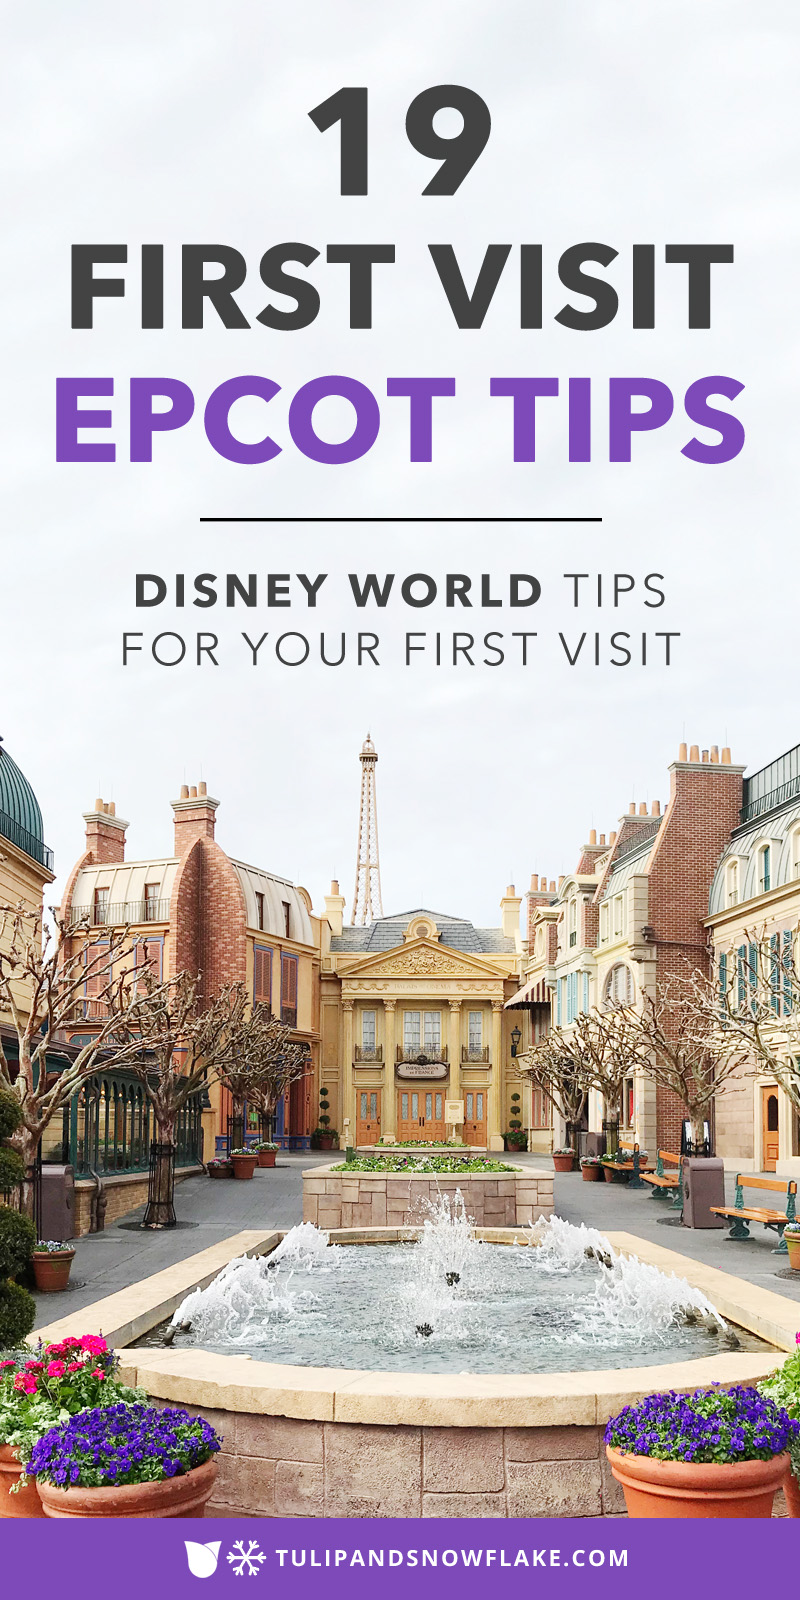 First Visit Epcot Tips